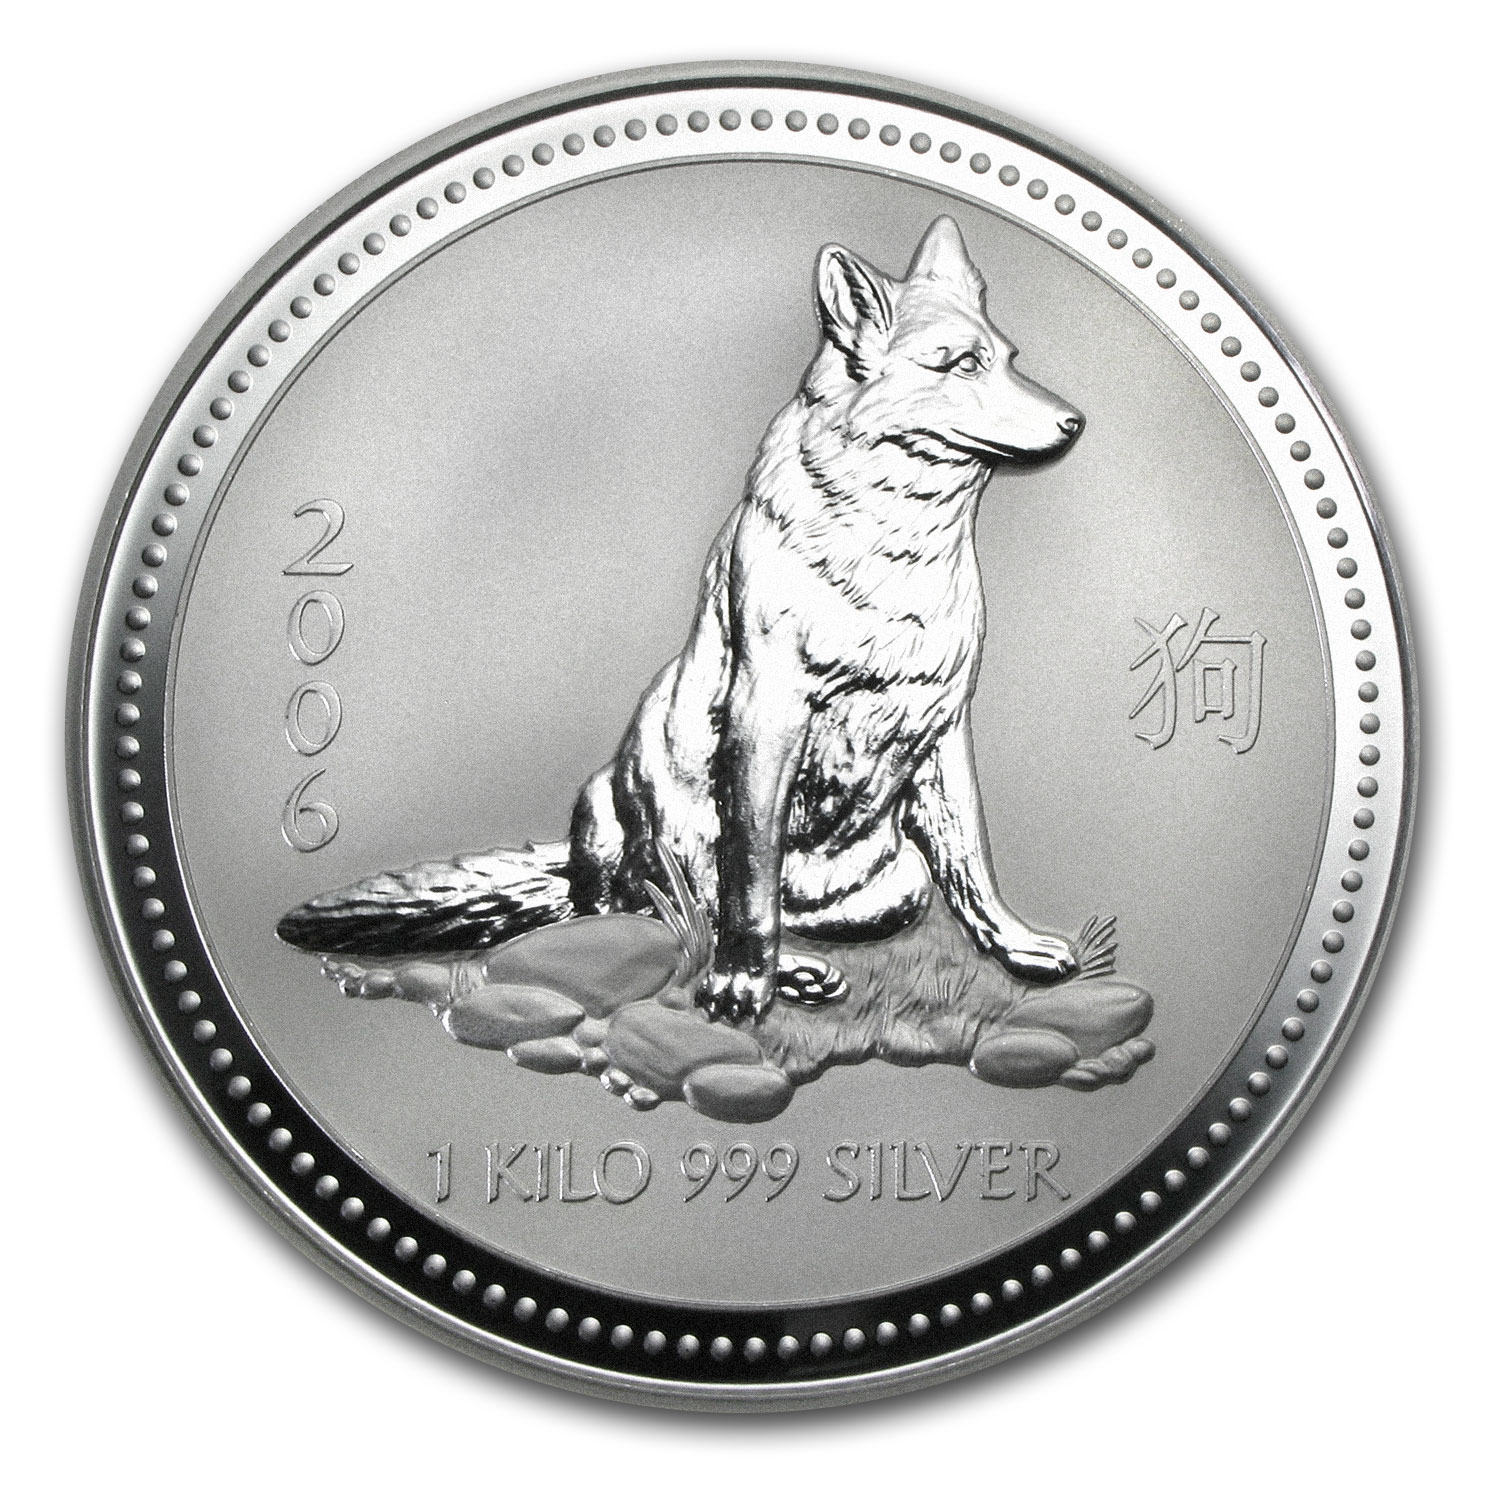 2006 Australia 1 kilo Silver Year of the Dog BU